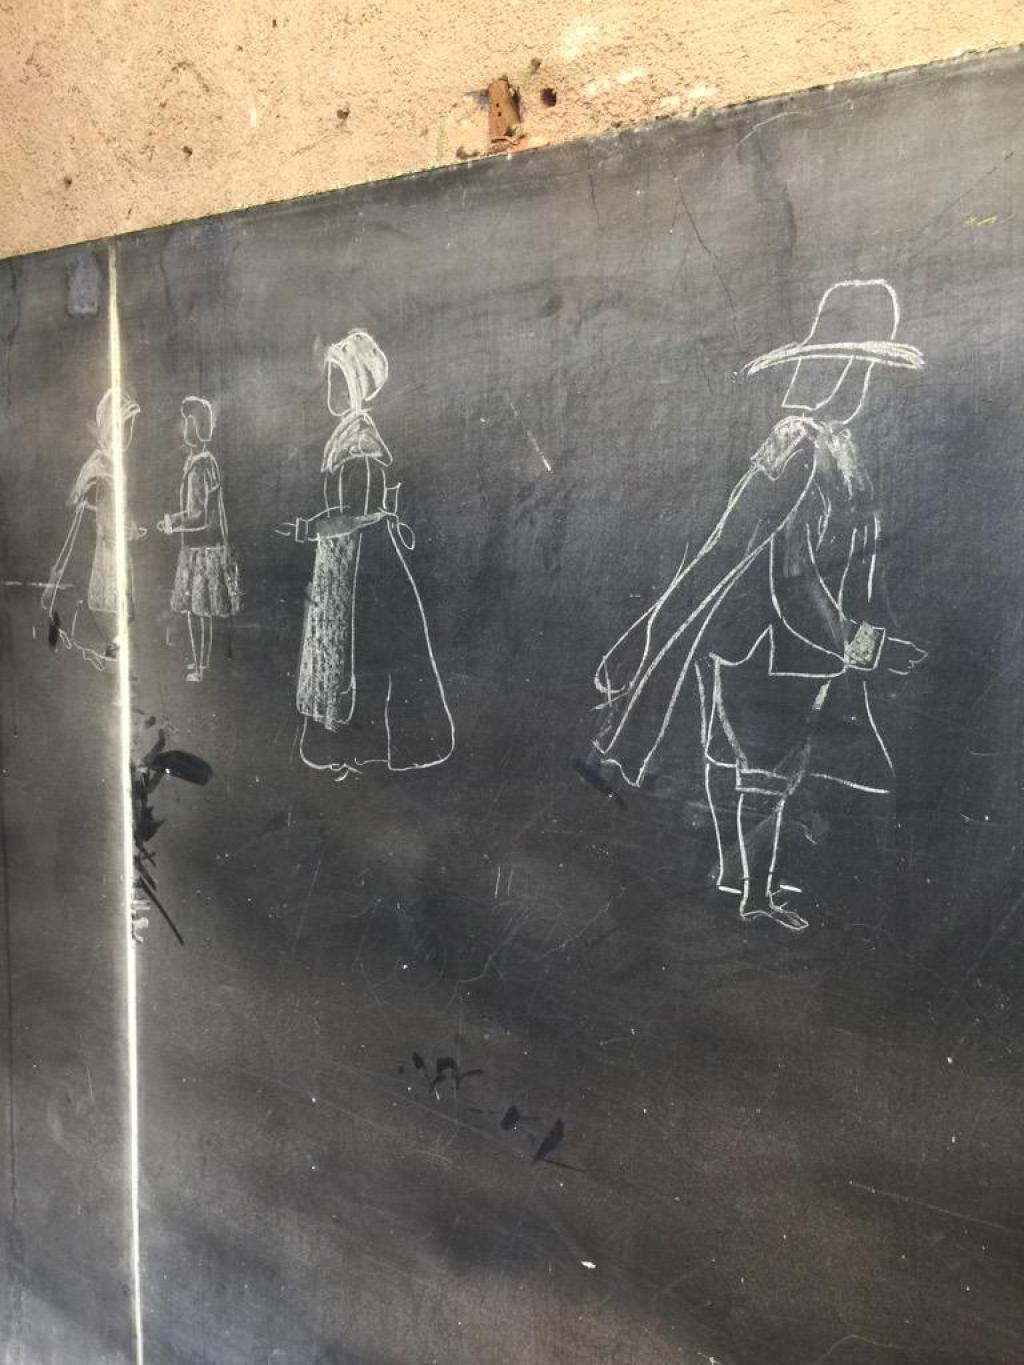 OKCPS Discovered Chalkboard Drawing